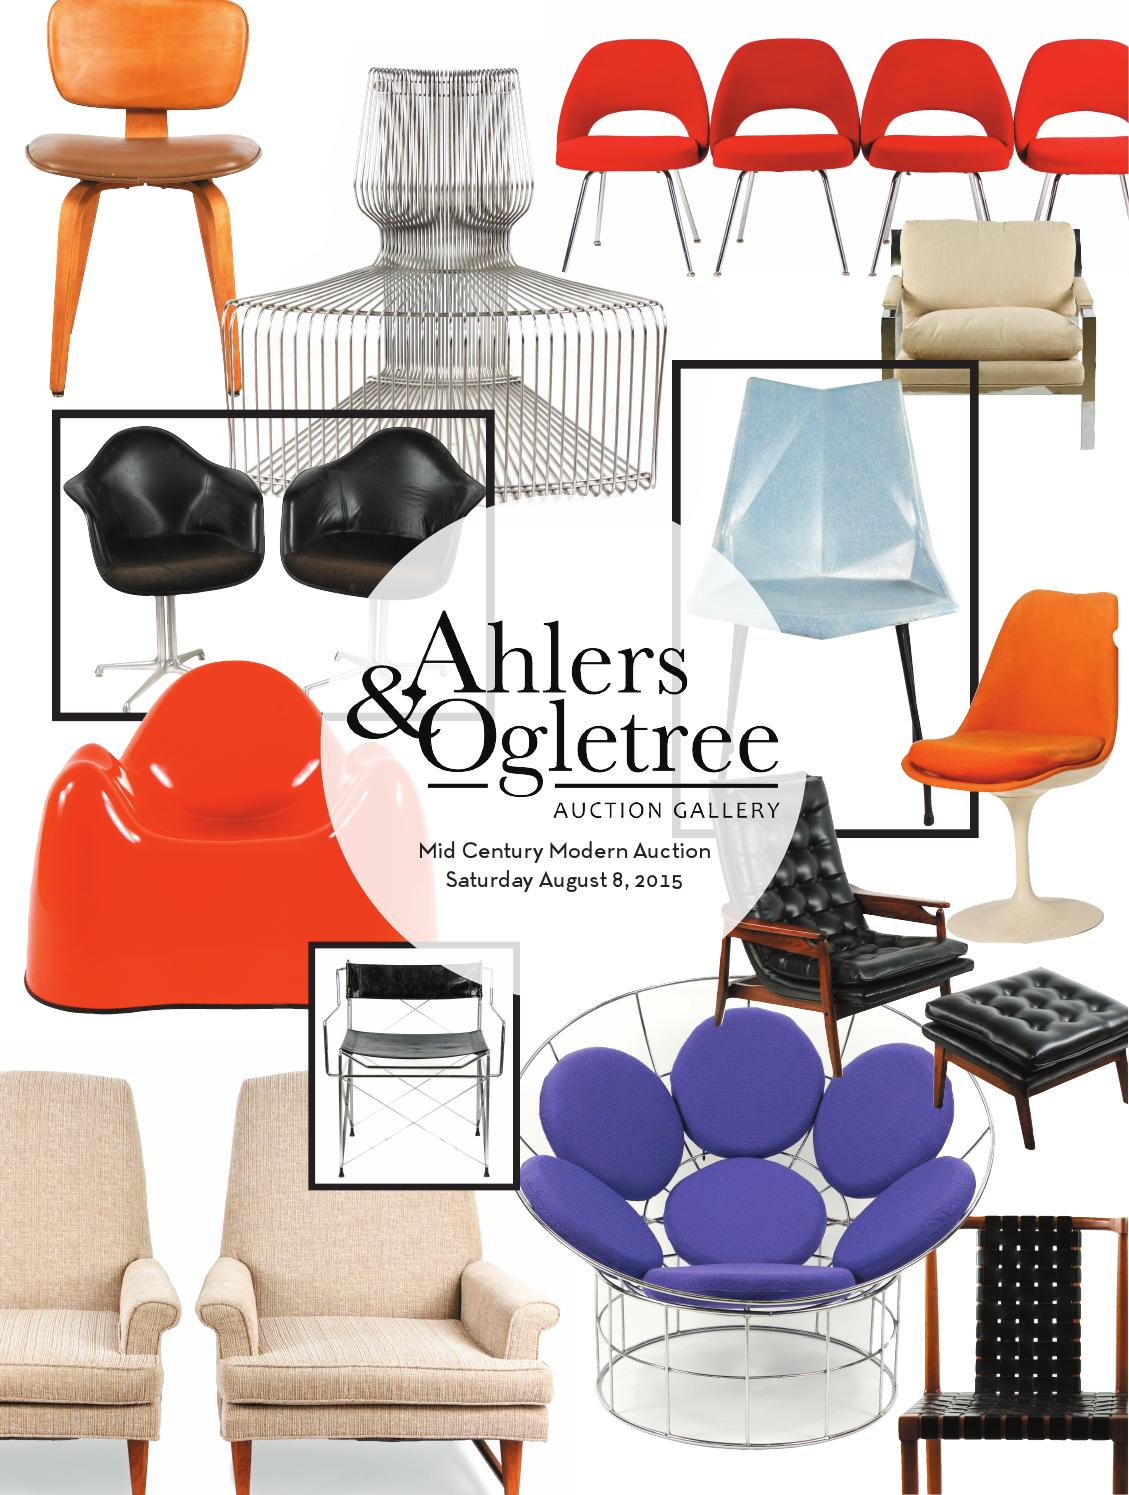 Surprising Ahlers Ogletree Auction Gallery August 2015 Mid Century Pabps2019 Chair Design Images Pabps2019Com